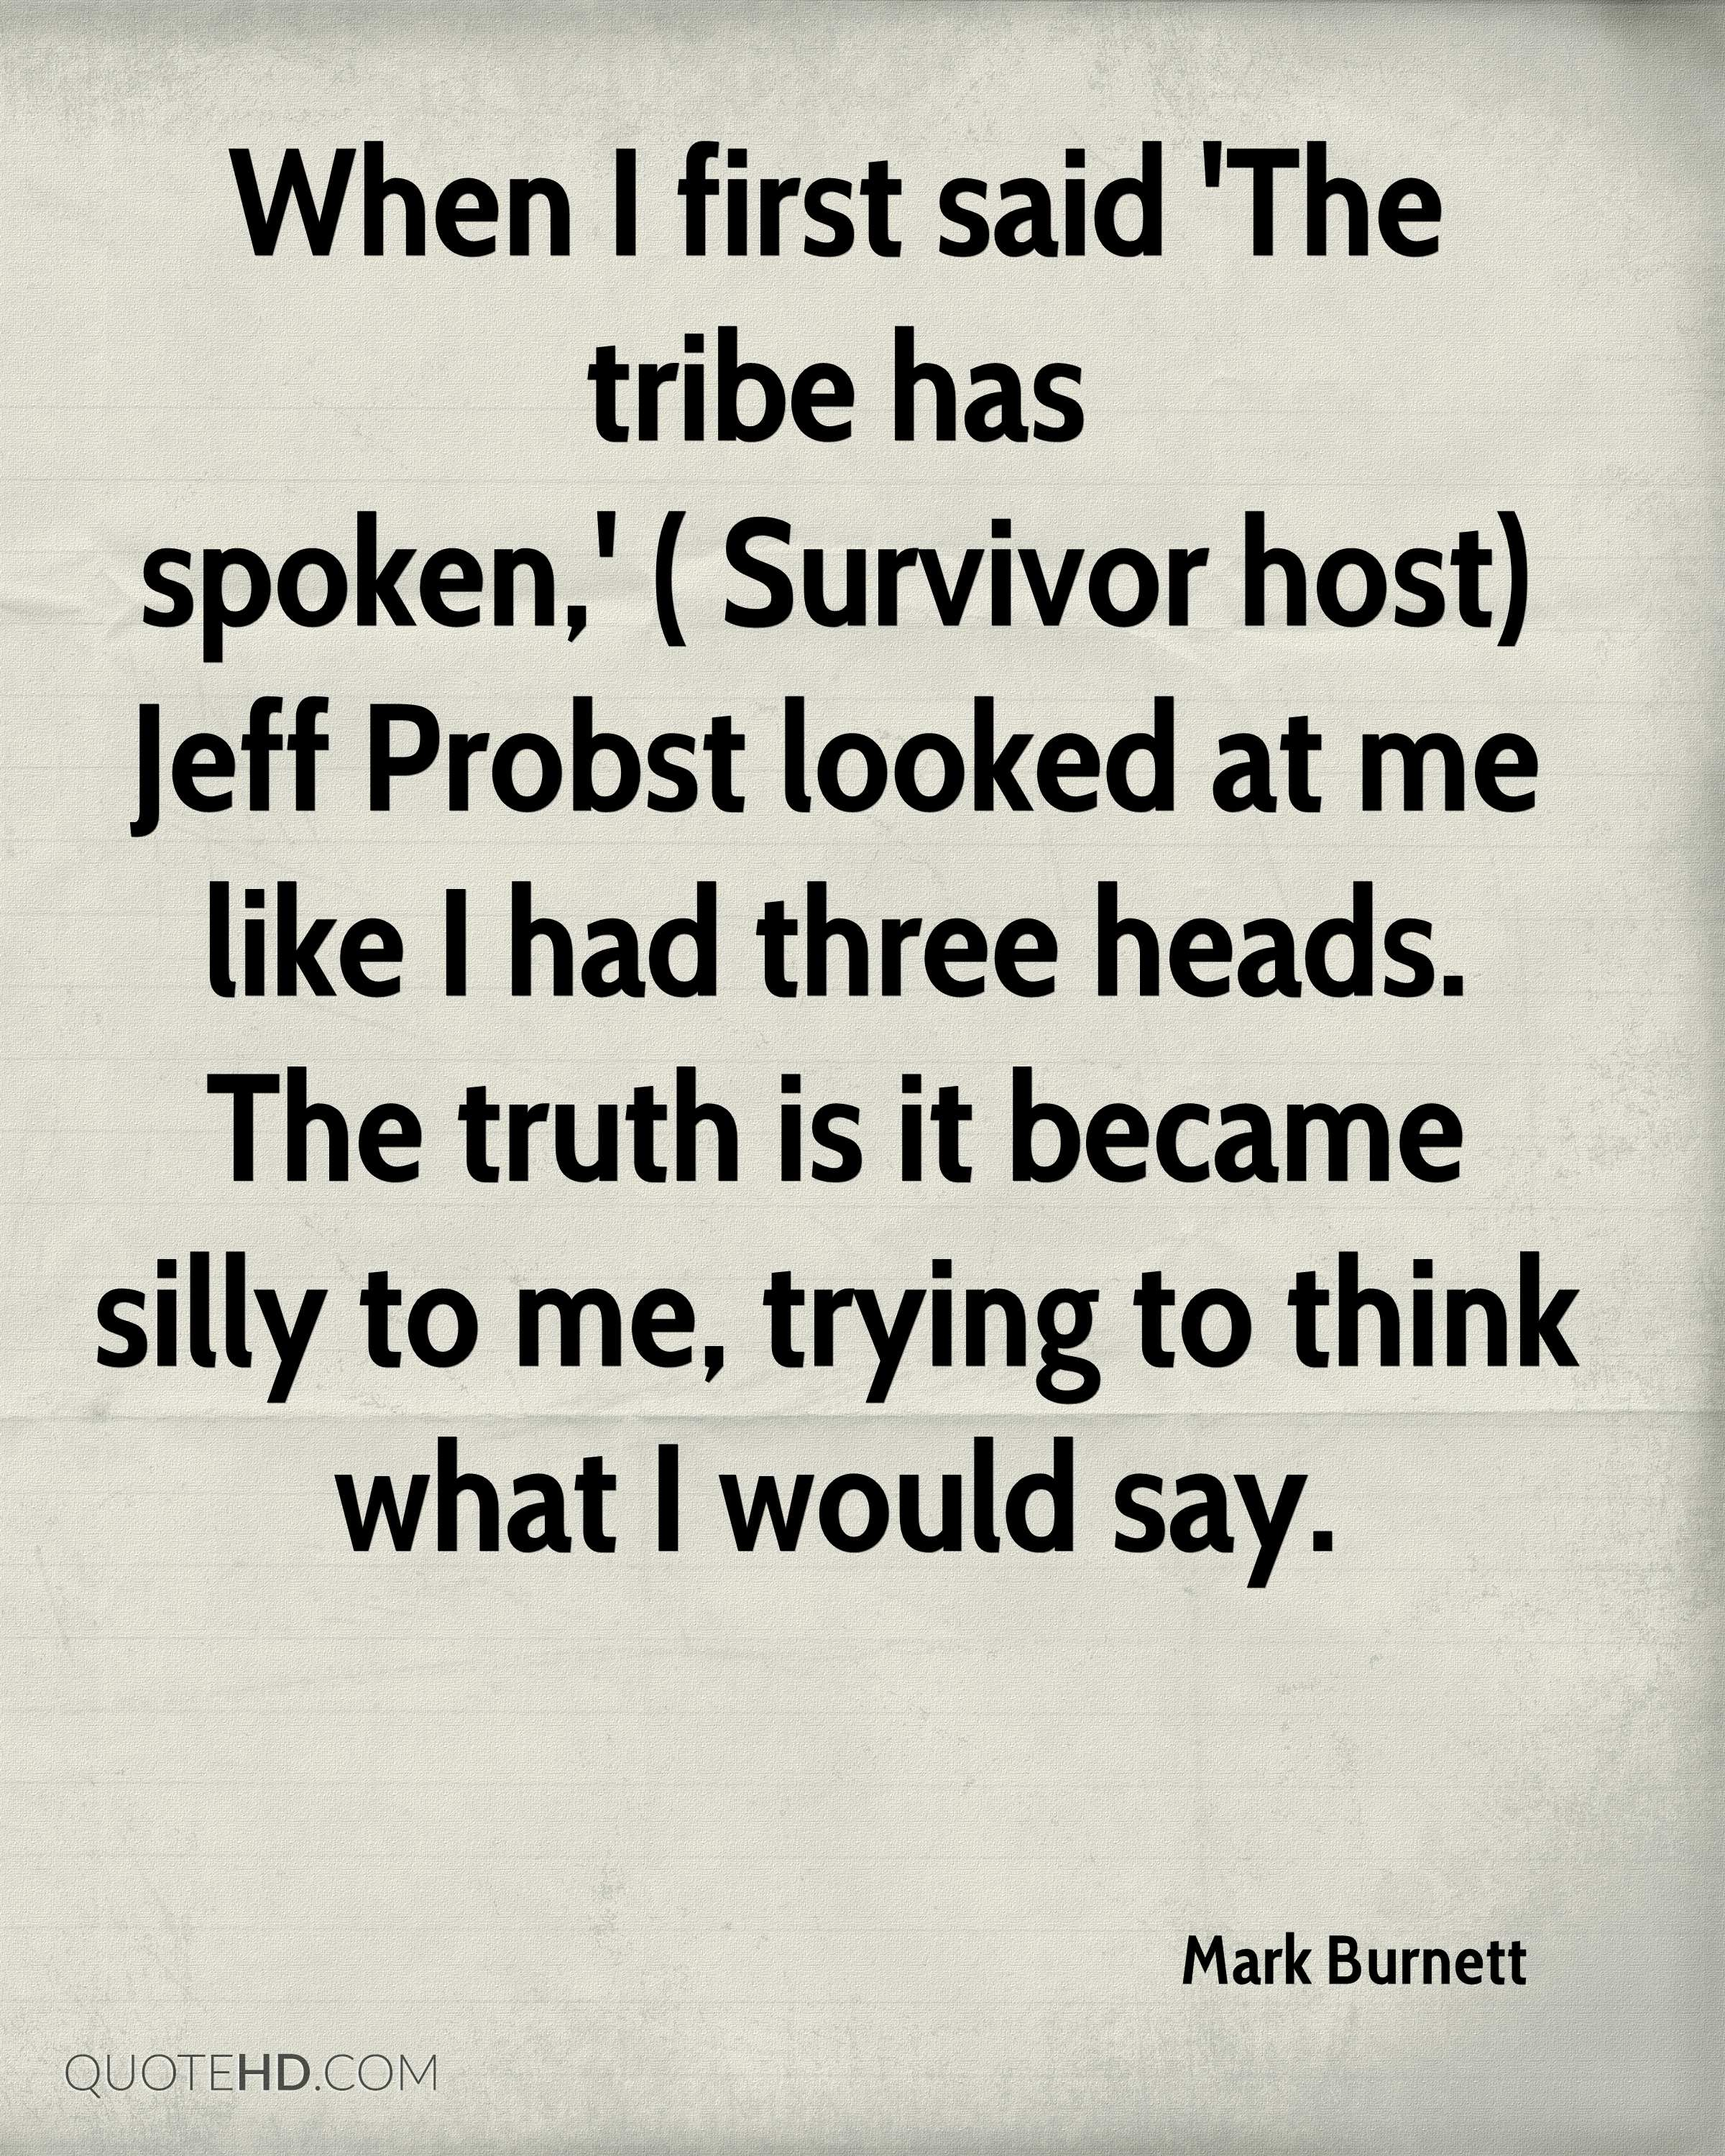 When I first said 'The tribe has spoken,' ( Survivor host) Jeff Probst looked at me like I had three heads. The truth is it became silly to me, trying to think what I would say.